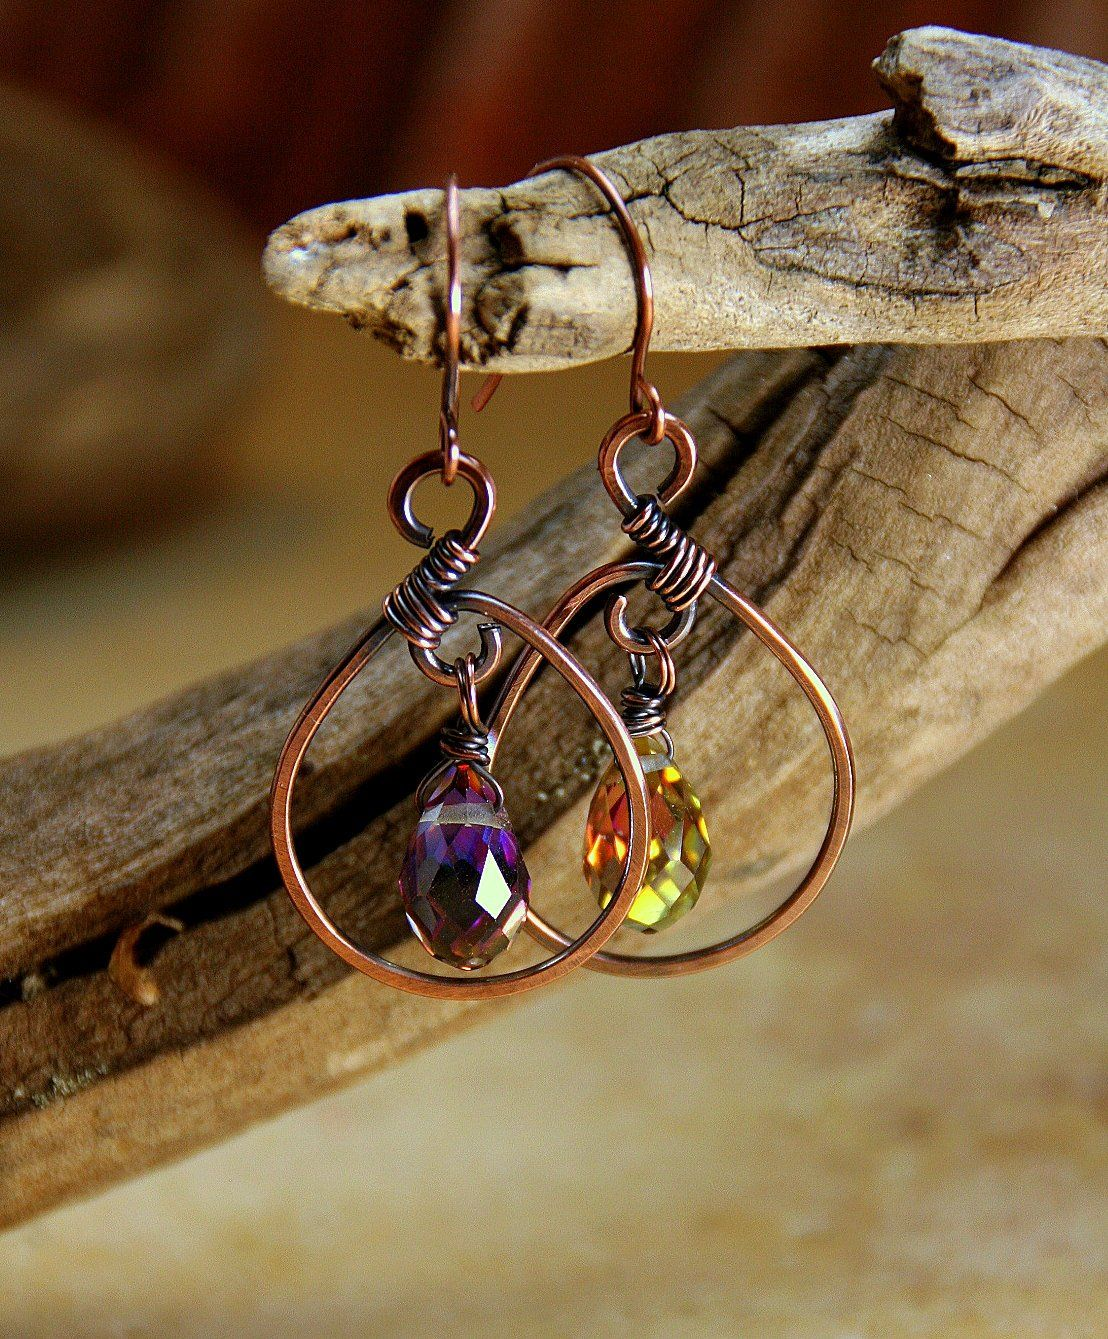 Piercing arten ohr  Copper Wrapped and Glass Prism Beaded Earrings  Artisan  Hand